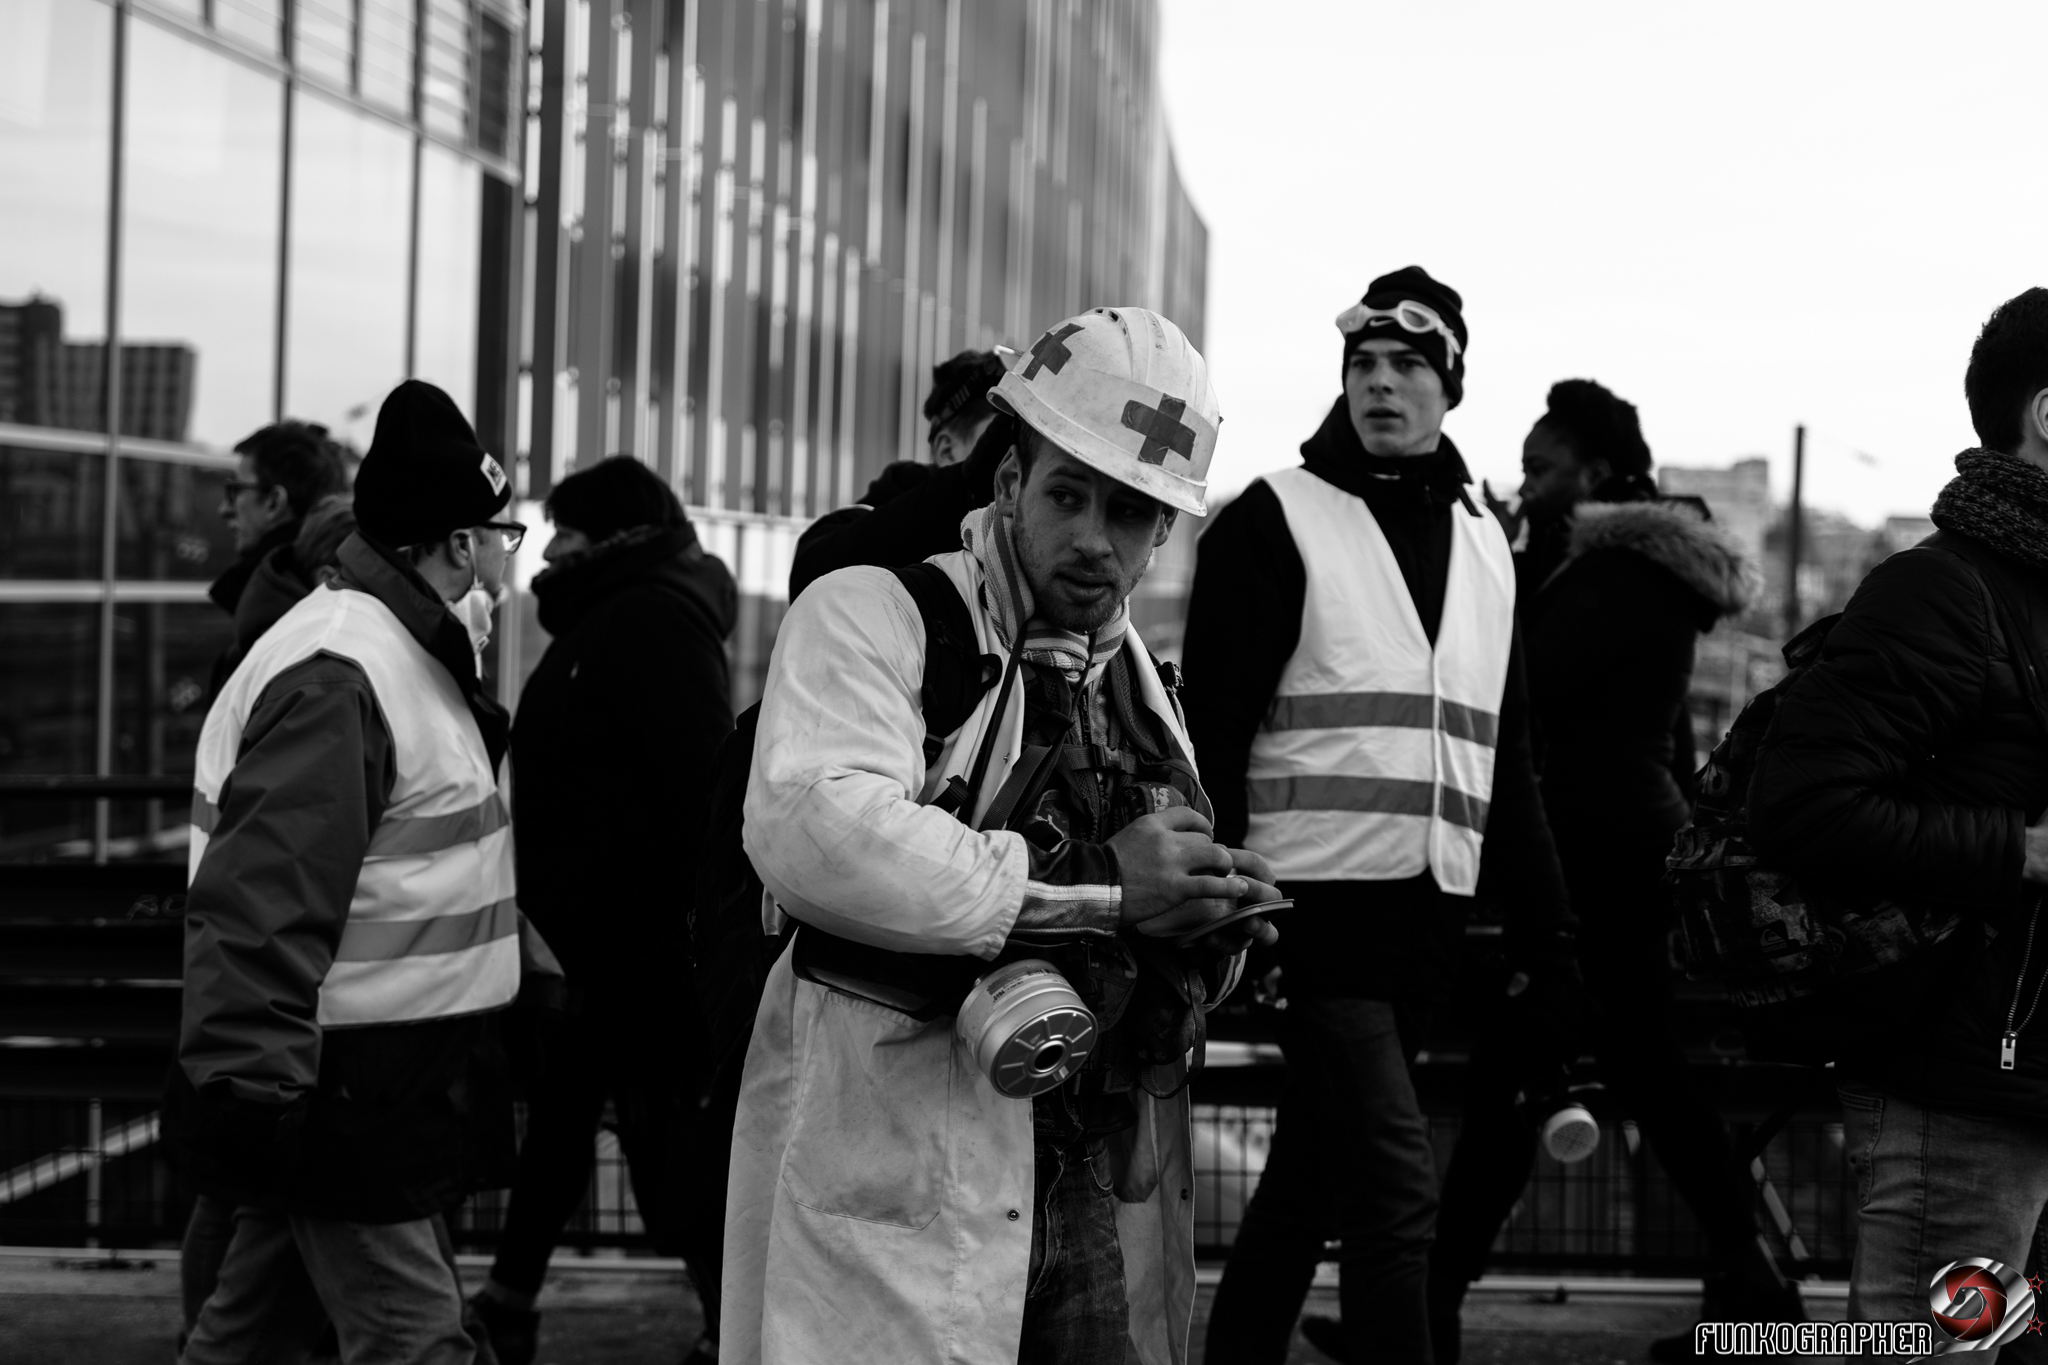 gilets jaunes, acte X, nancy, france, yellow jackets, riot